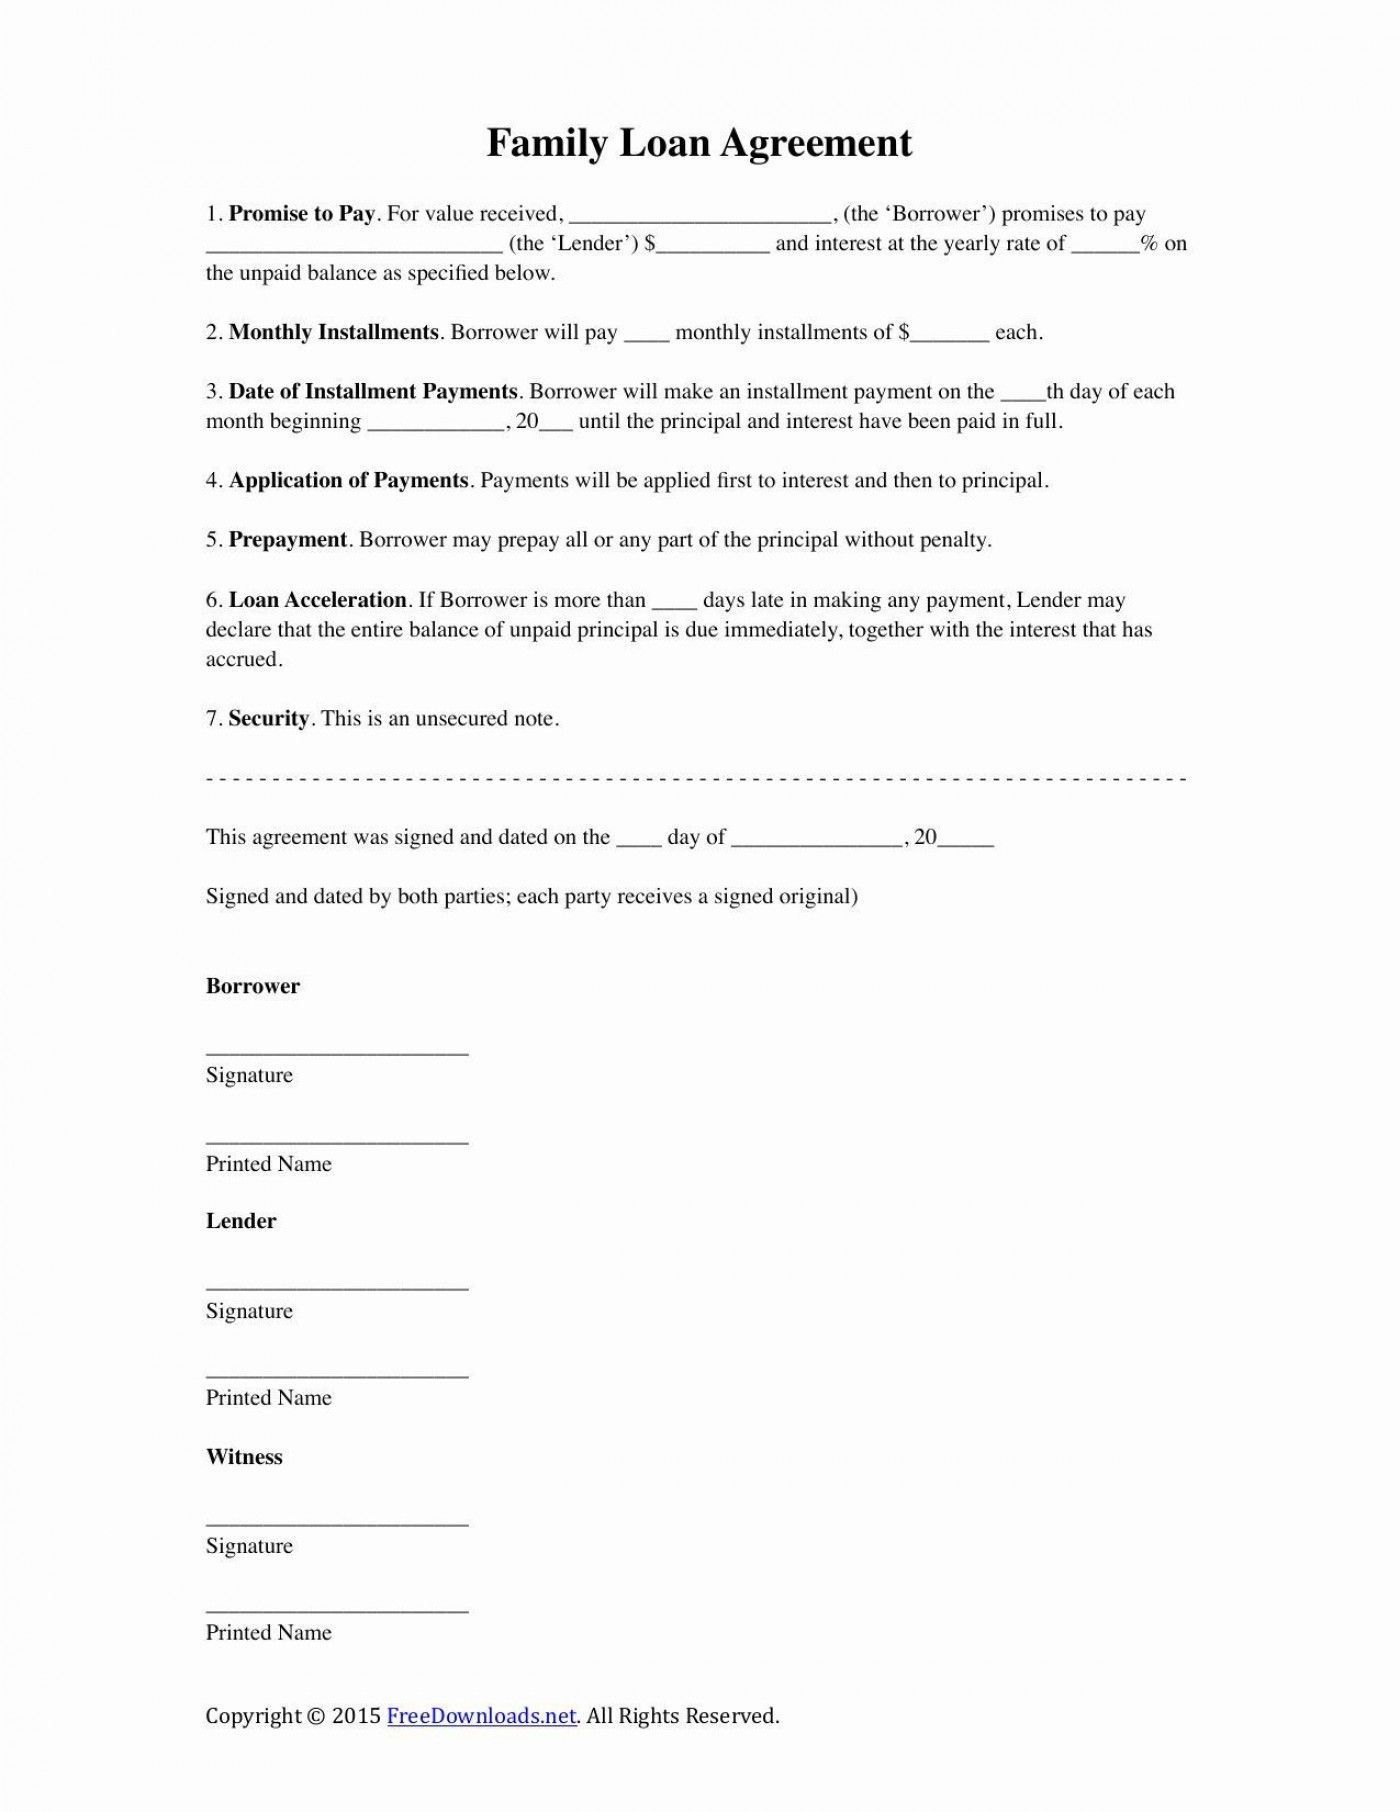 000 Wonderful Family Loan Agreement Format India Idea 1400